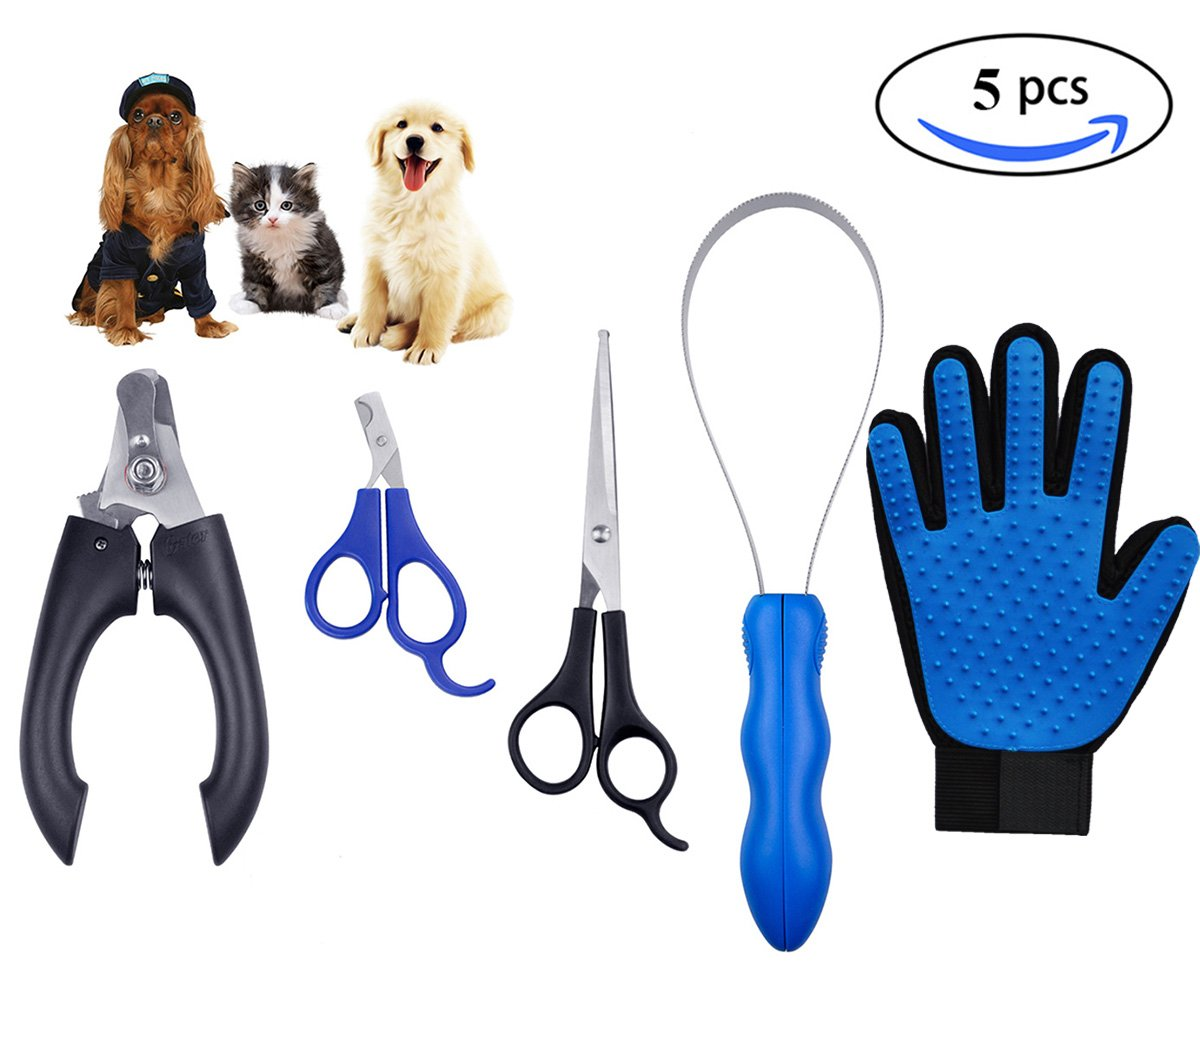 ShuyNature Coupe Ongle Chien Chat Lapin Professionnel, Brosse Poils Animaux, Ciseaux Toilettage Chien, Coupe Griffes Chat, Kit de Toilettage 5pcs SHUY Nature